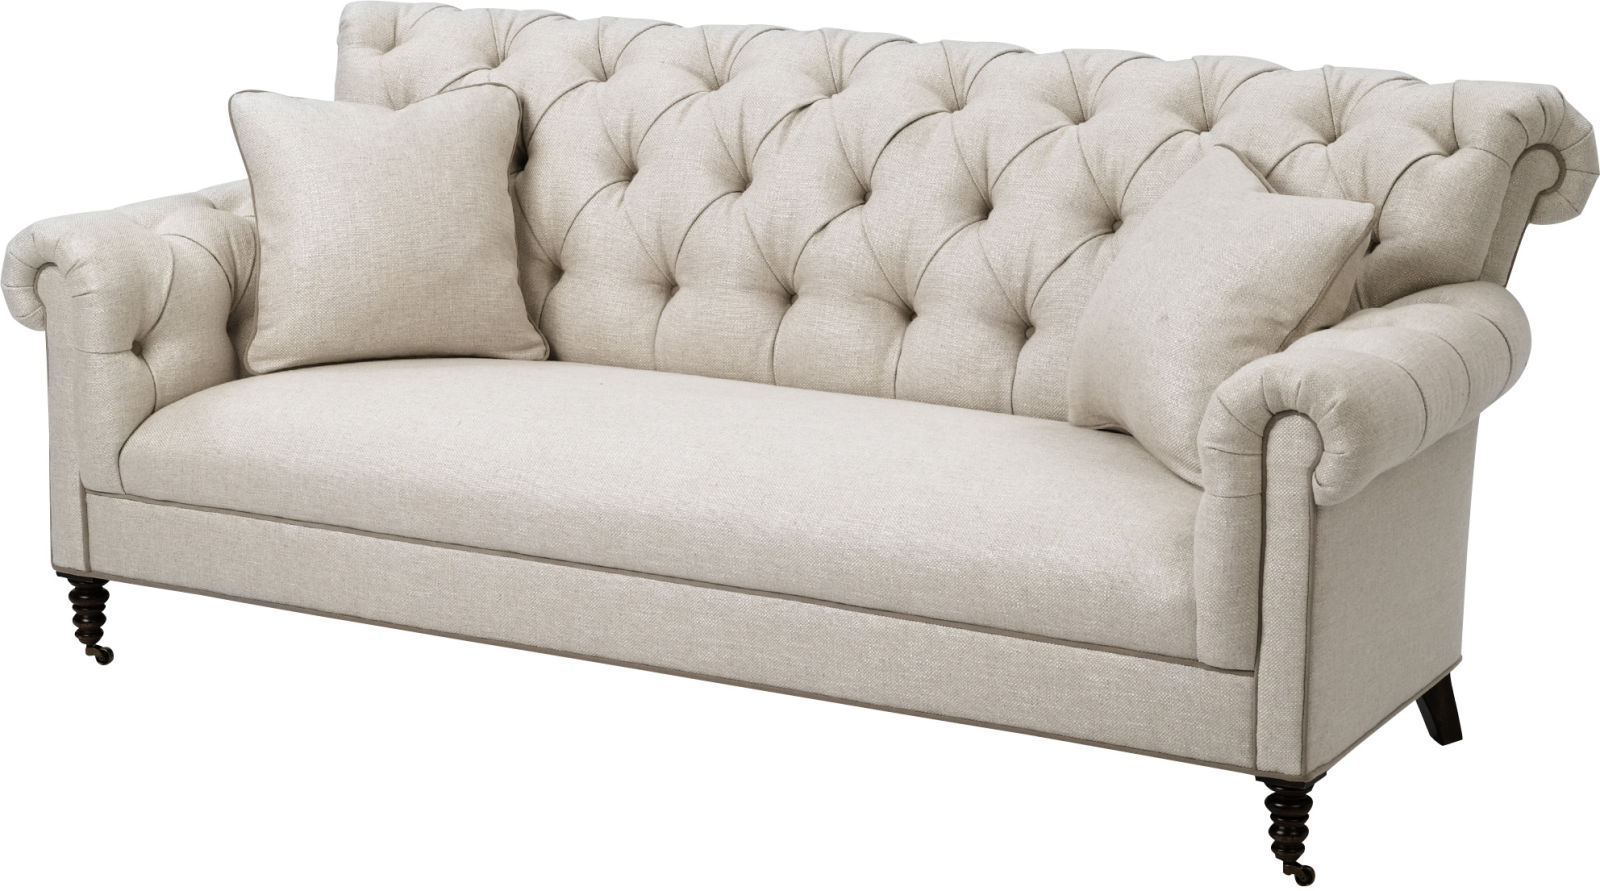 wesley sofa accessories hall furniture hickory nc product page 1932